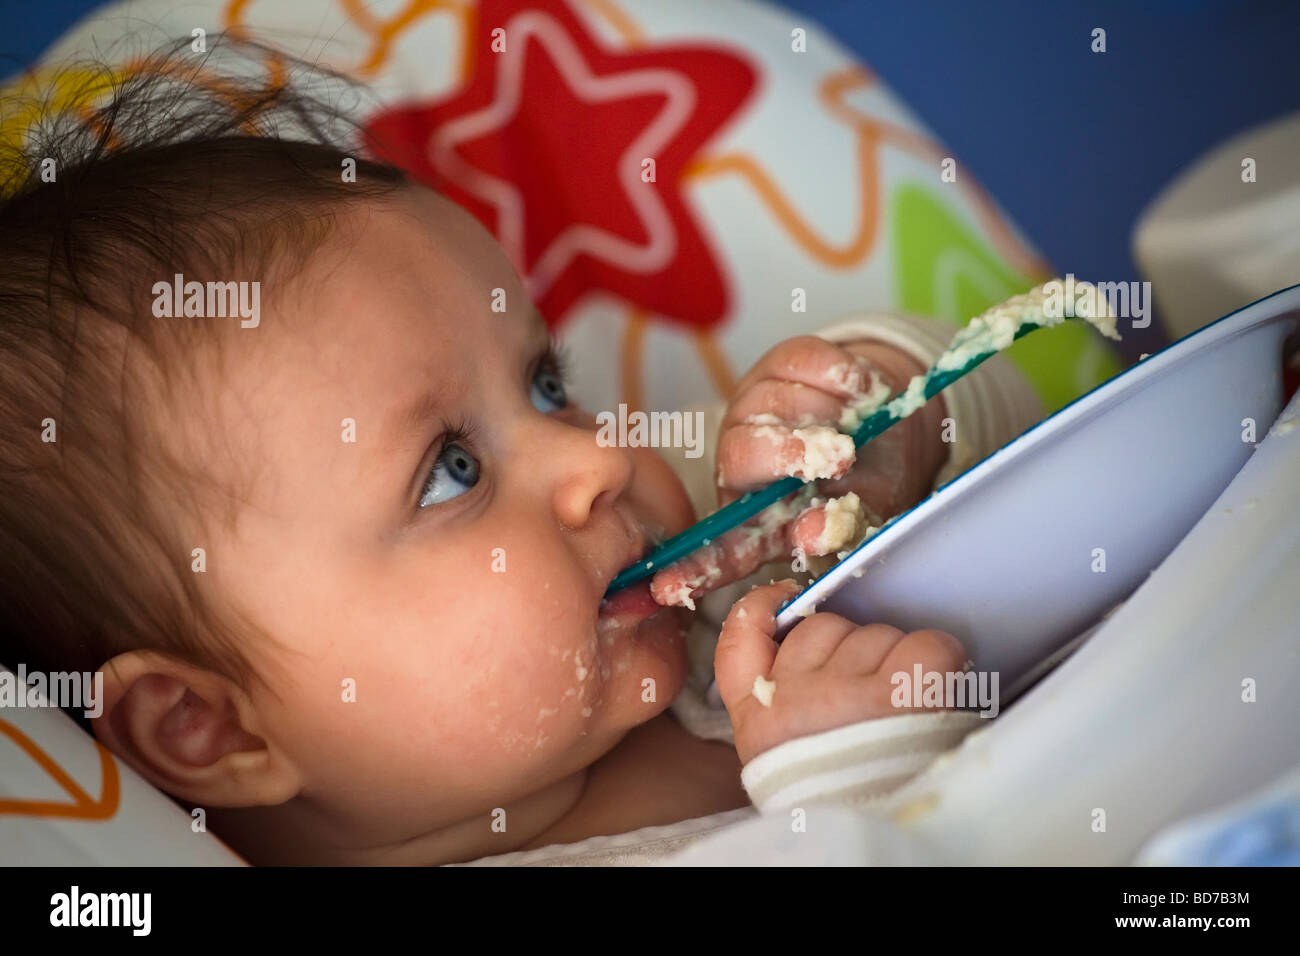 Young baby under six months old spoon feeding and making a mess - Stock Image